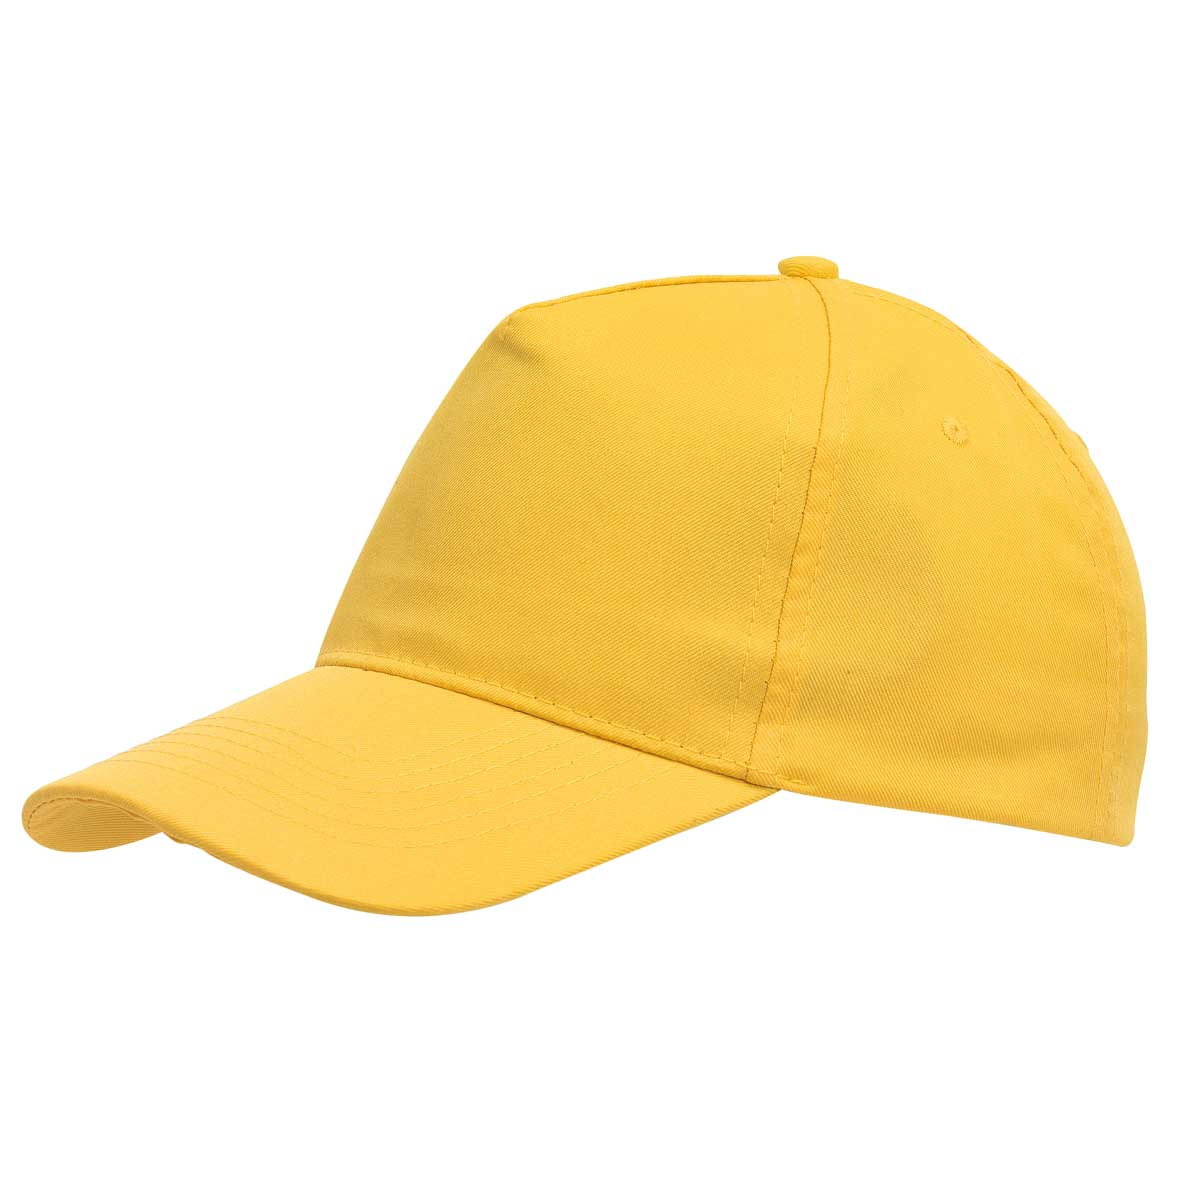 5 panel cap 'Favourite' - Yellow ins-0702053